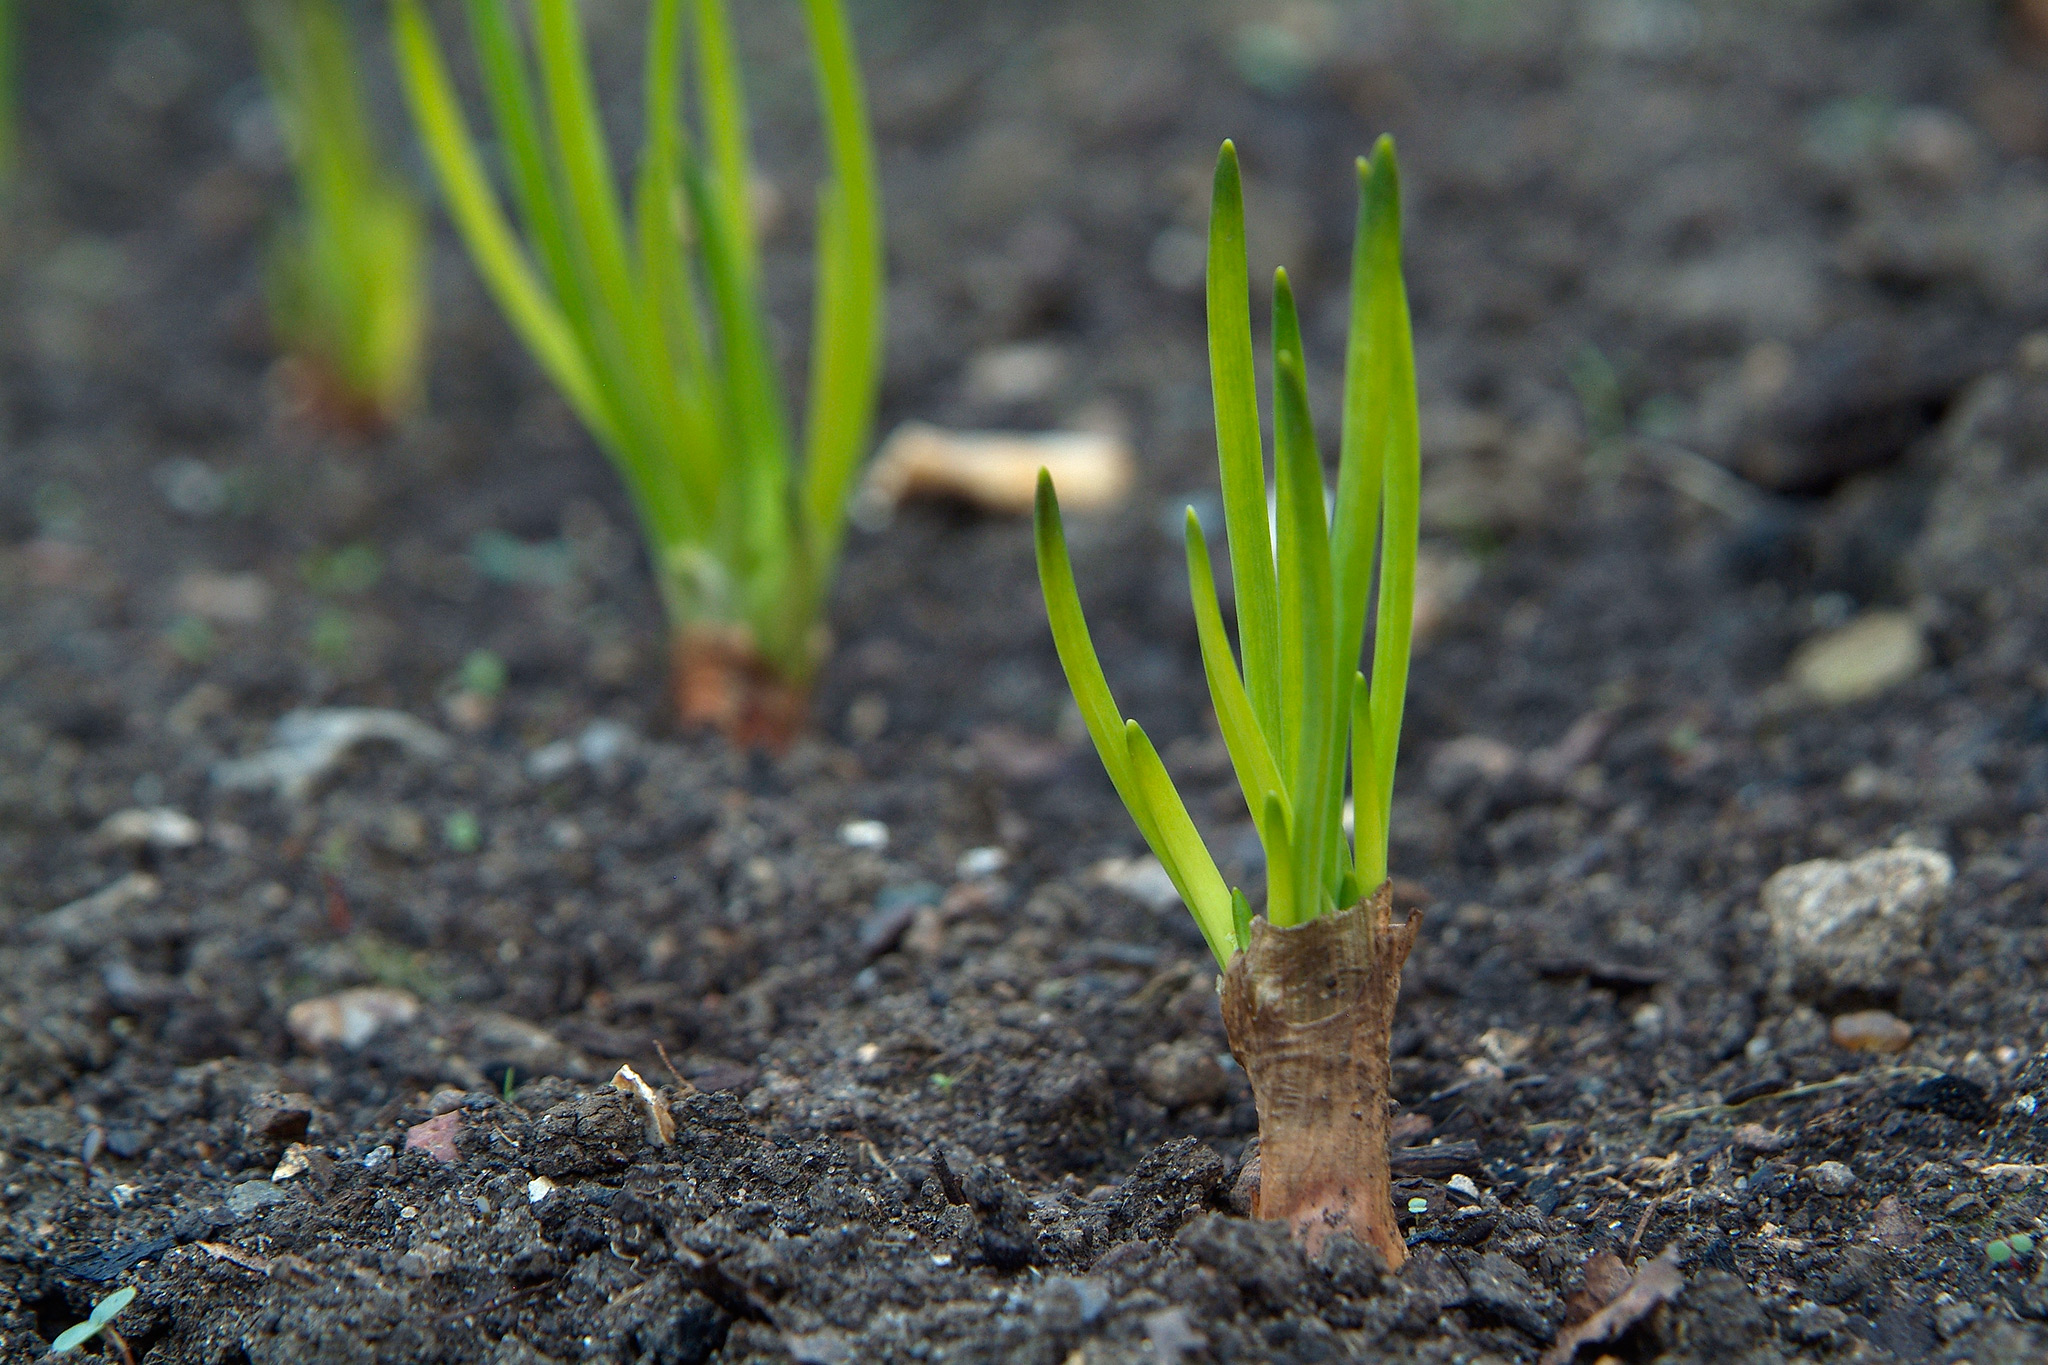 shallot-foliage-appearing-above-ground-2